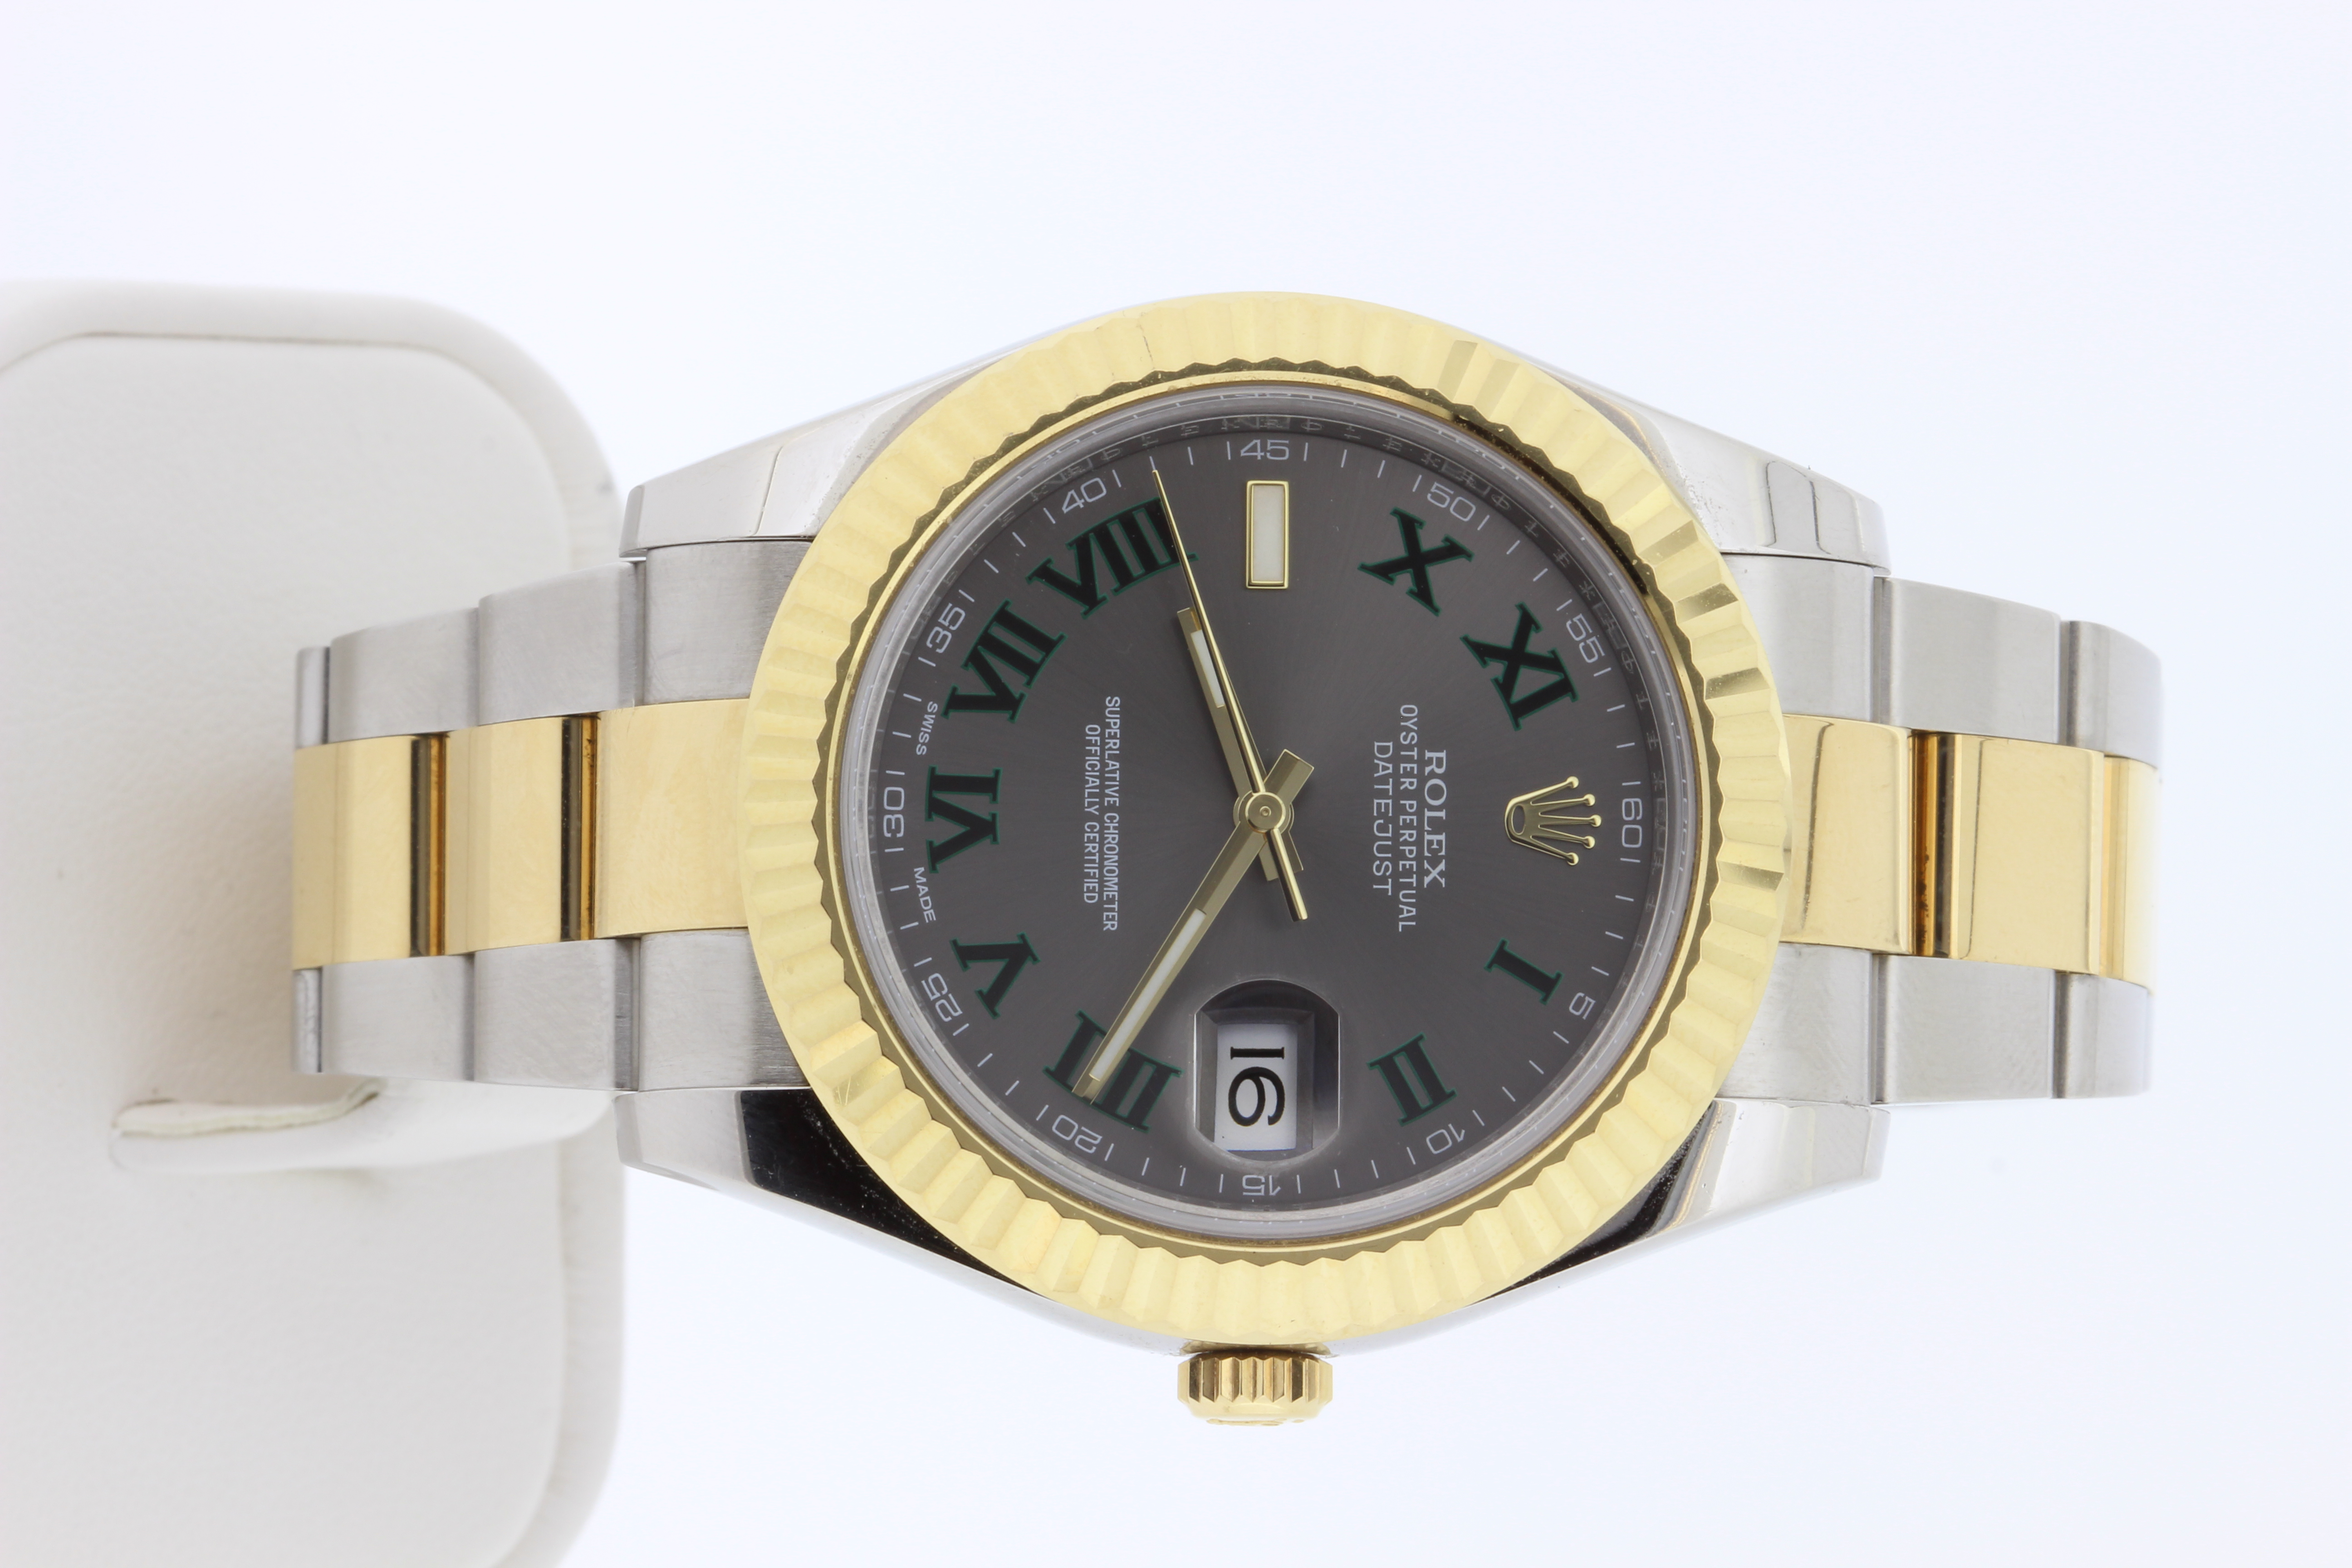 Datejust 2, 2014, box and papers